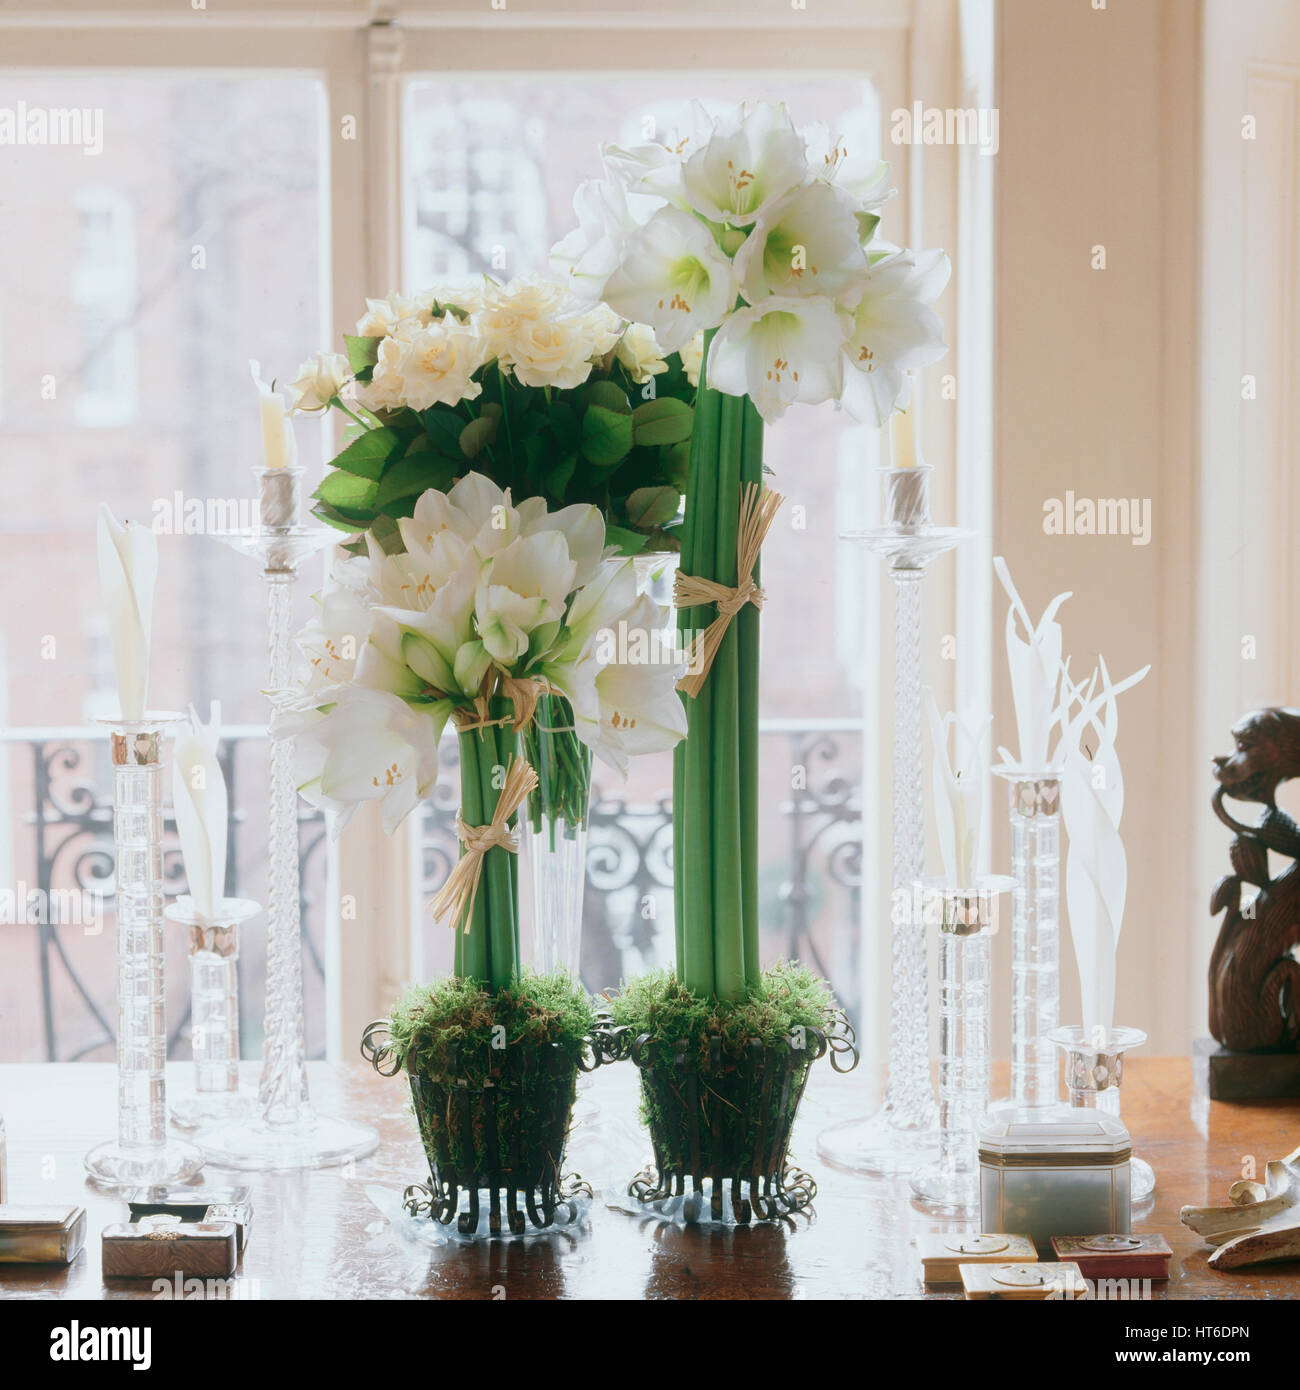 Flowers On A Dining Table.   Stock Image